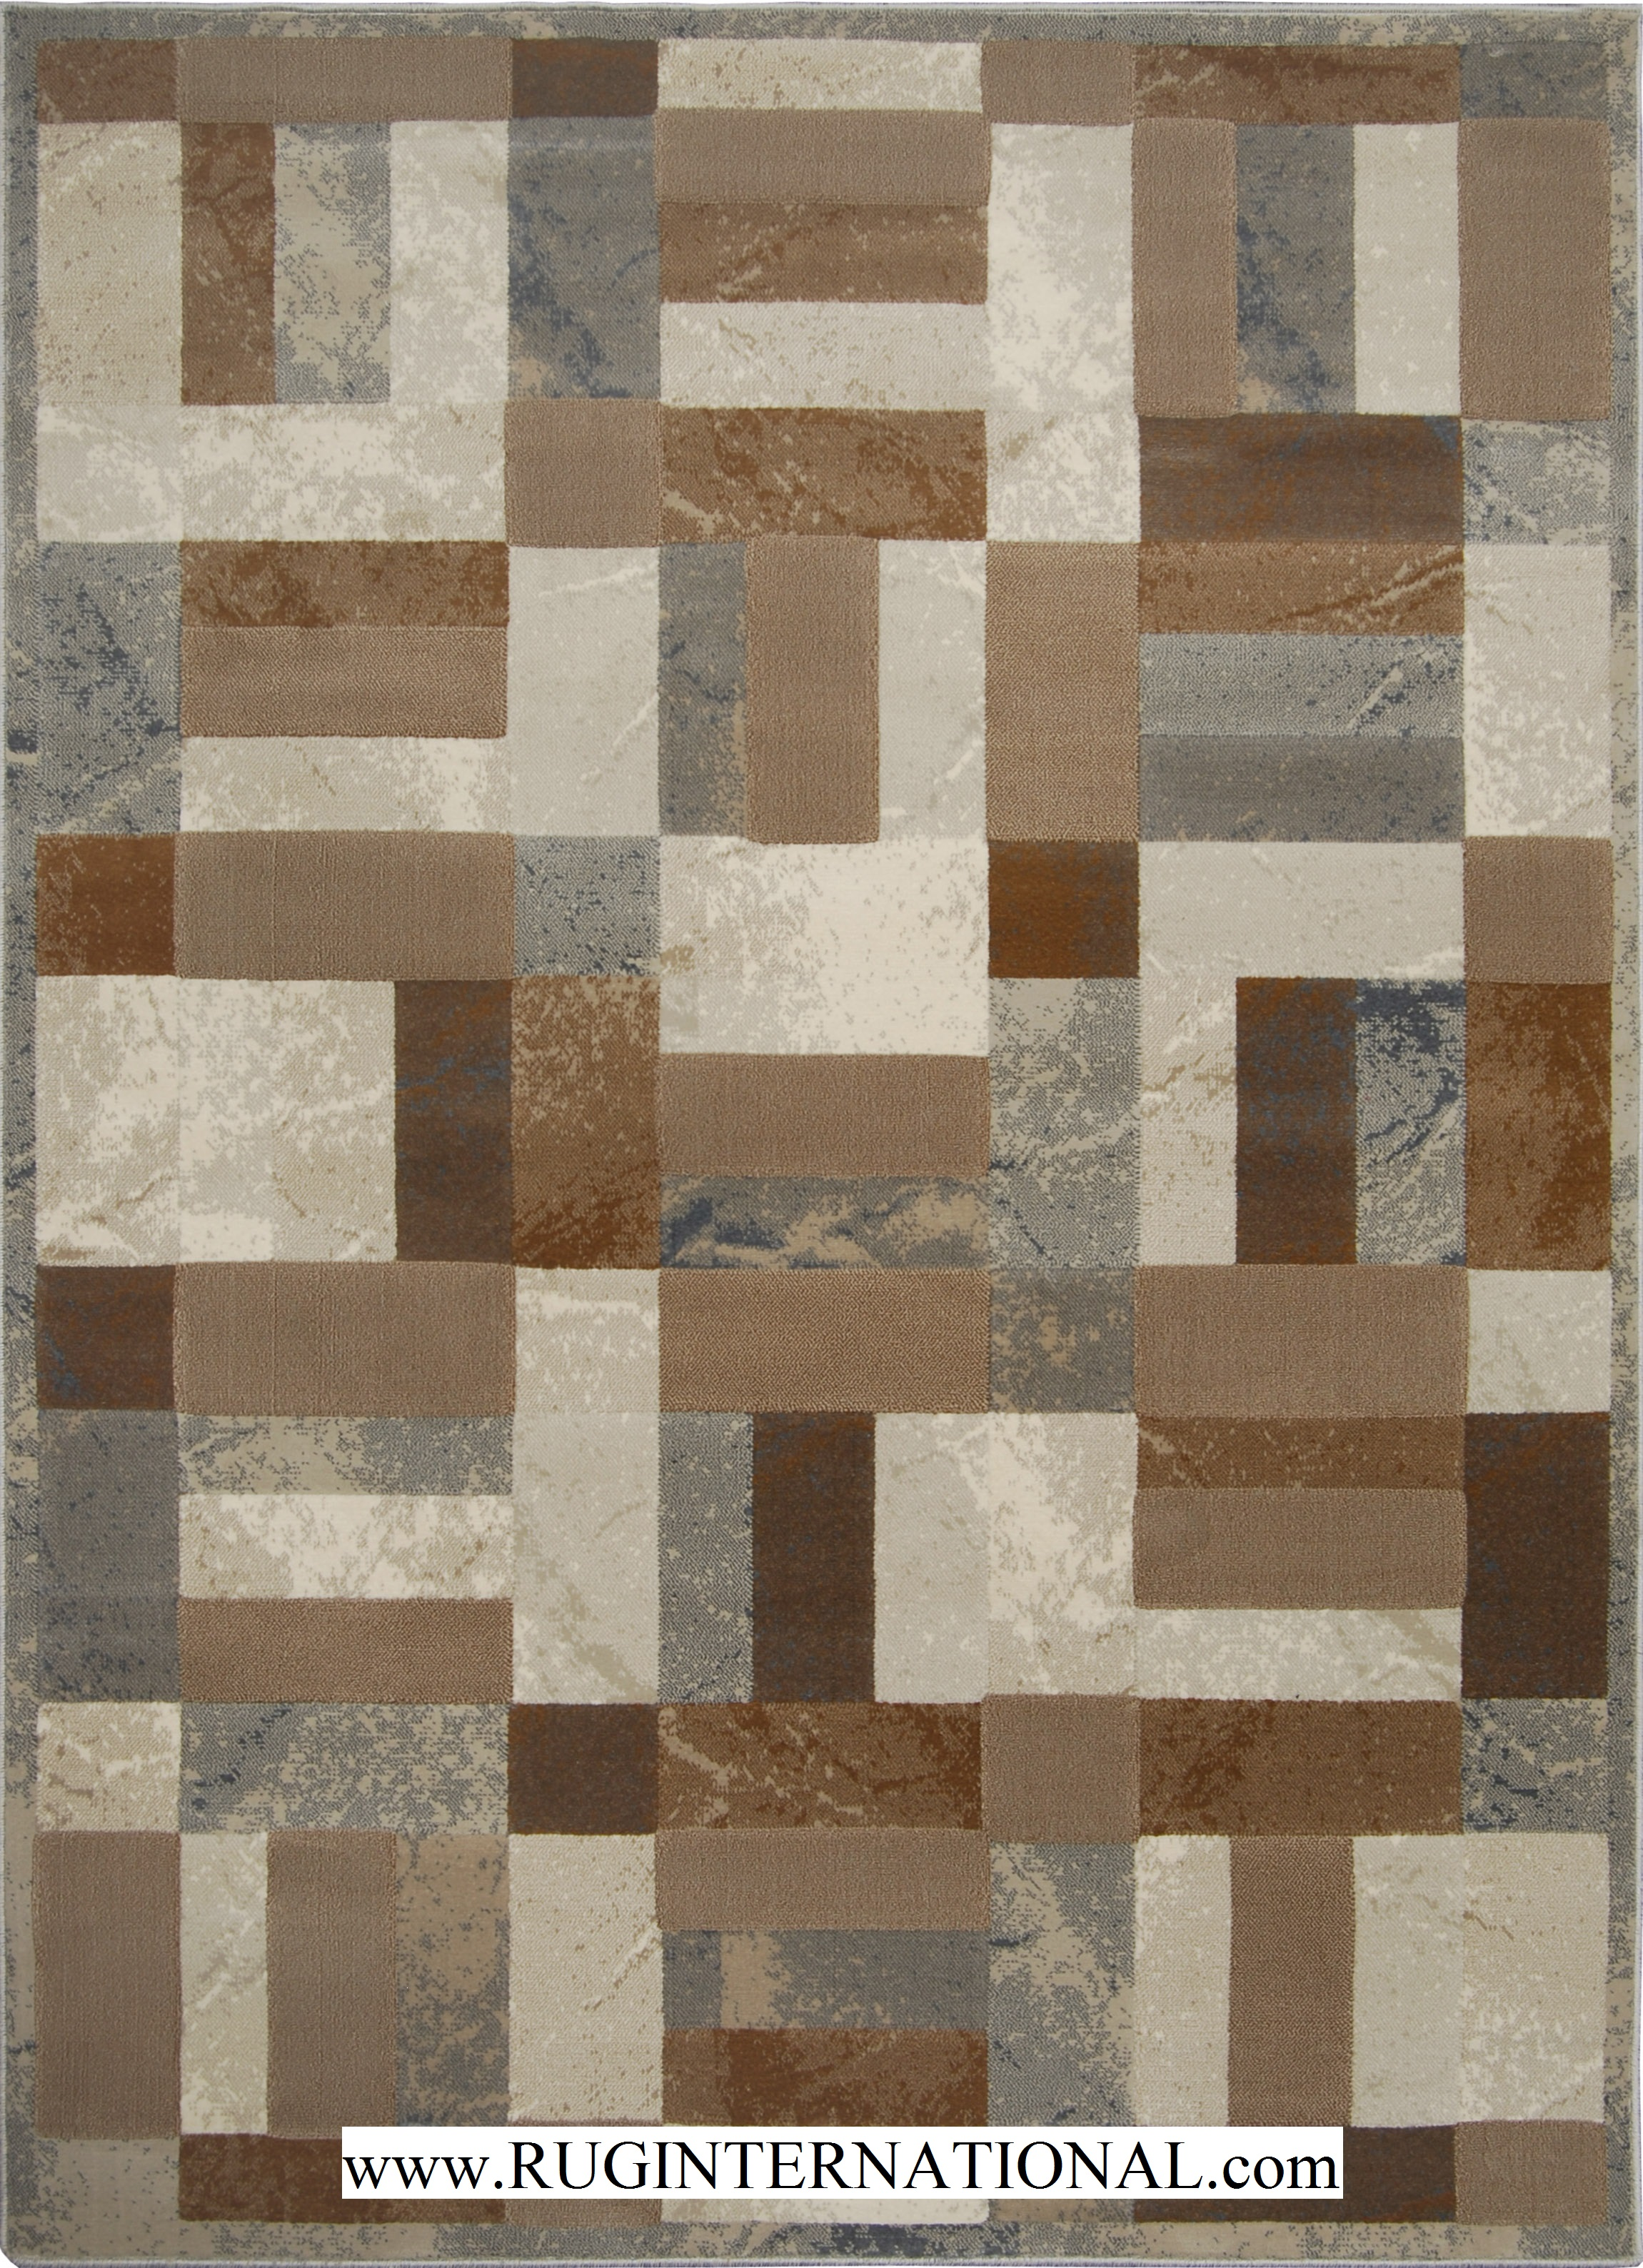 Modern Rug Designs High Quality Home Design